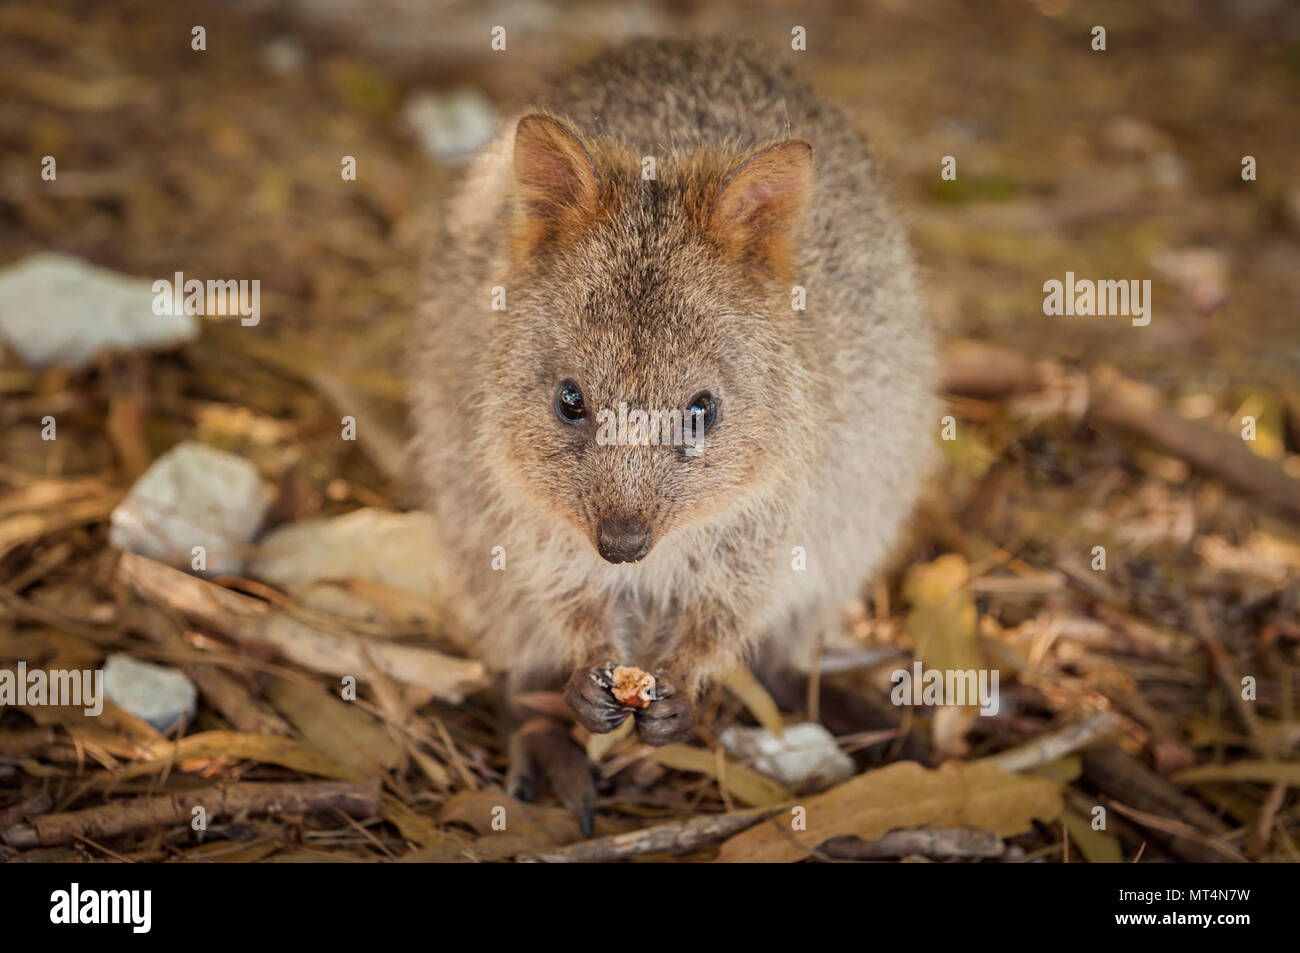 The Quokka is a rare kangaroo species only found on Rottnest Island. - Stock Image